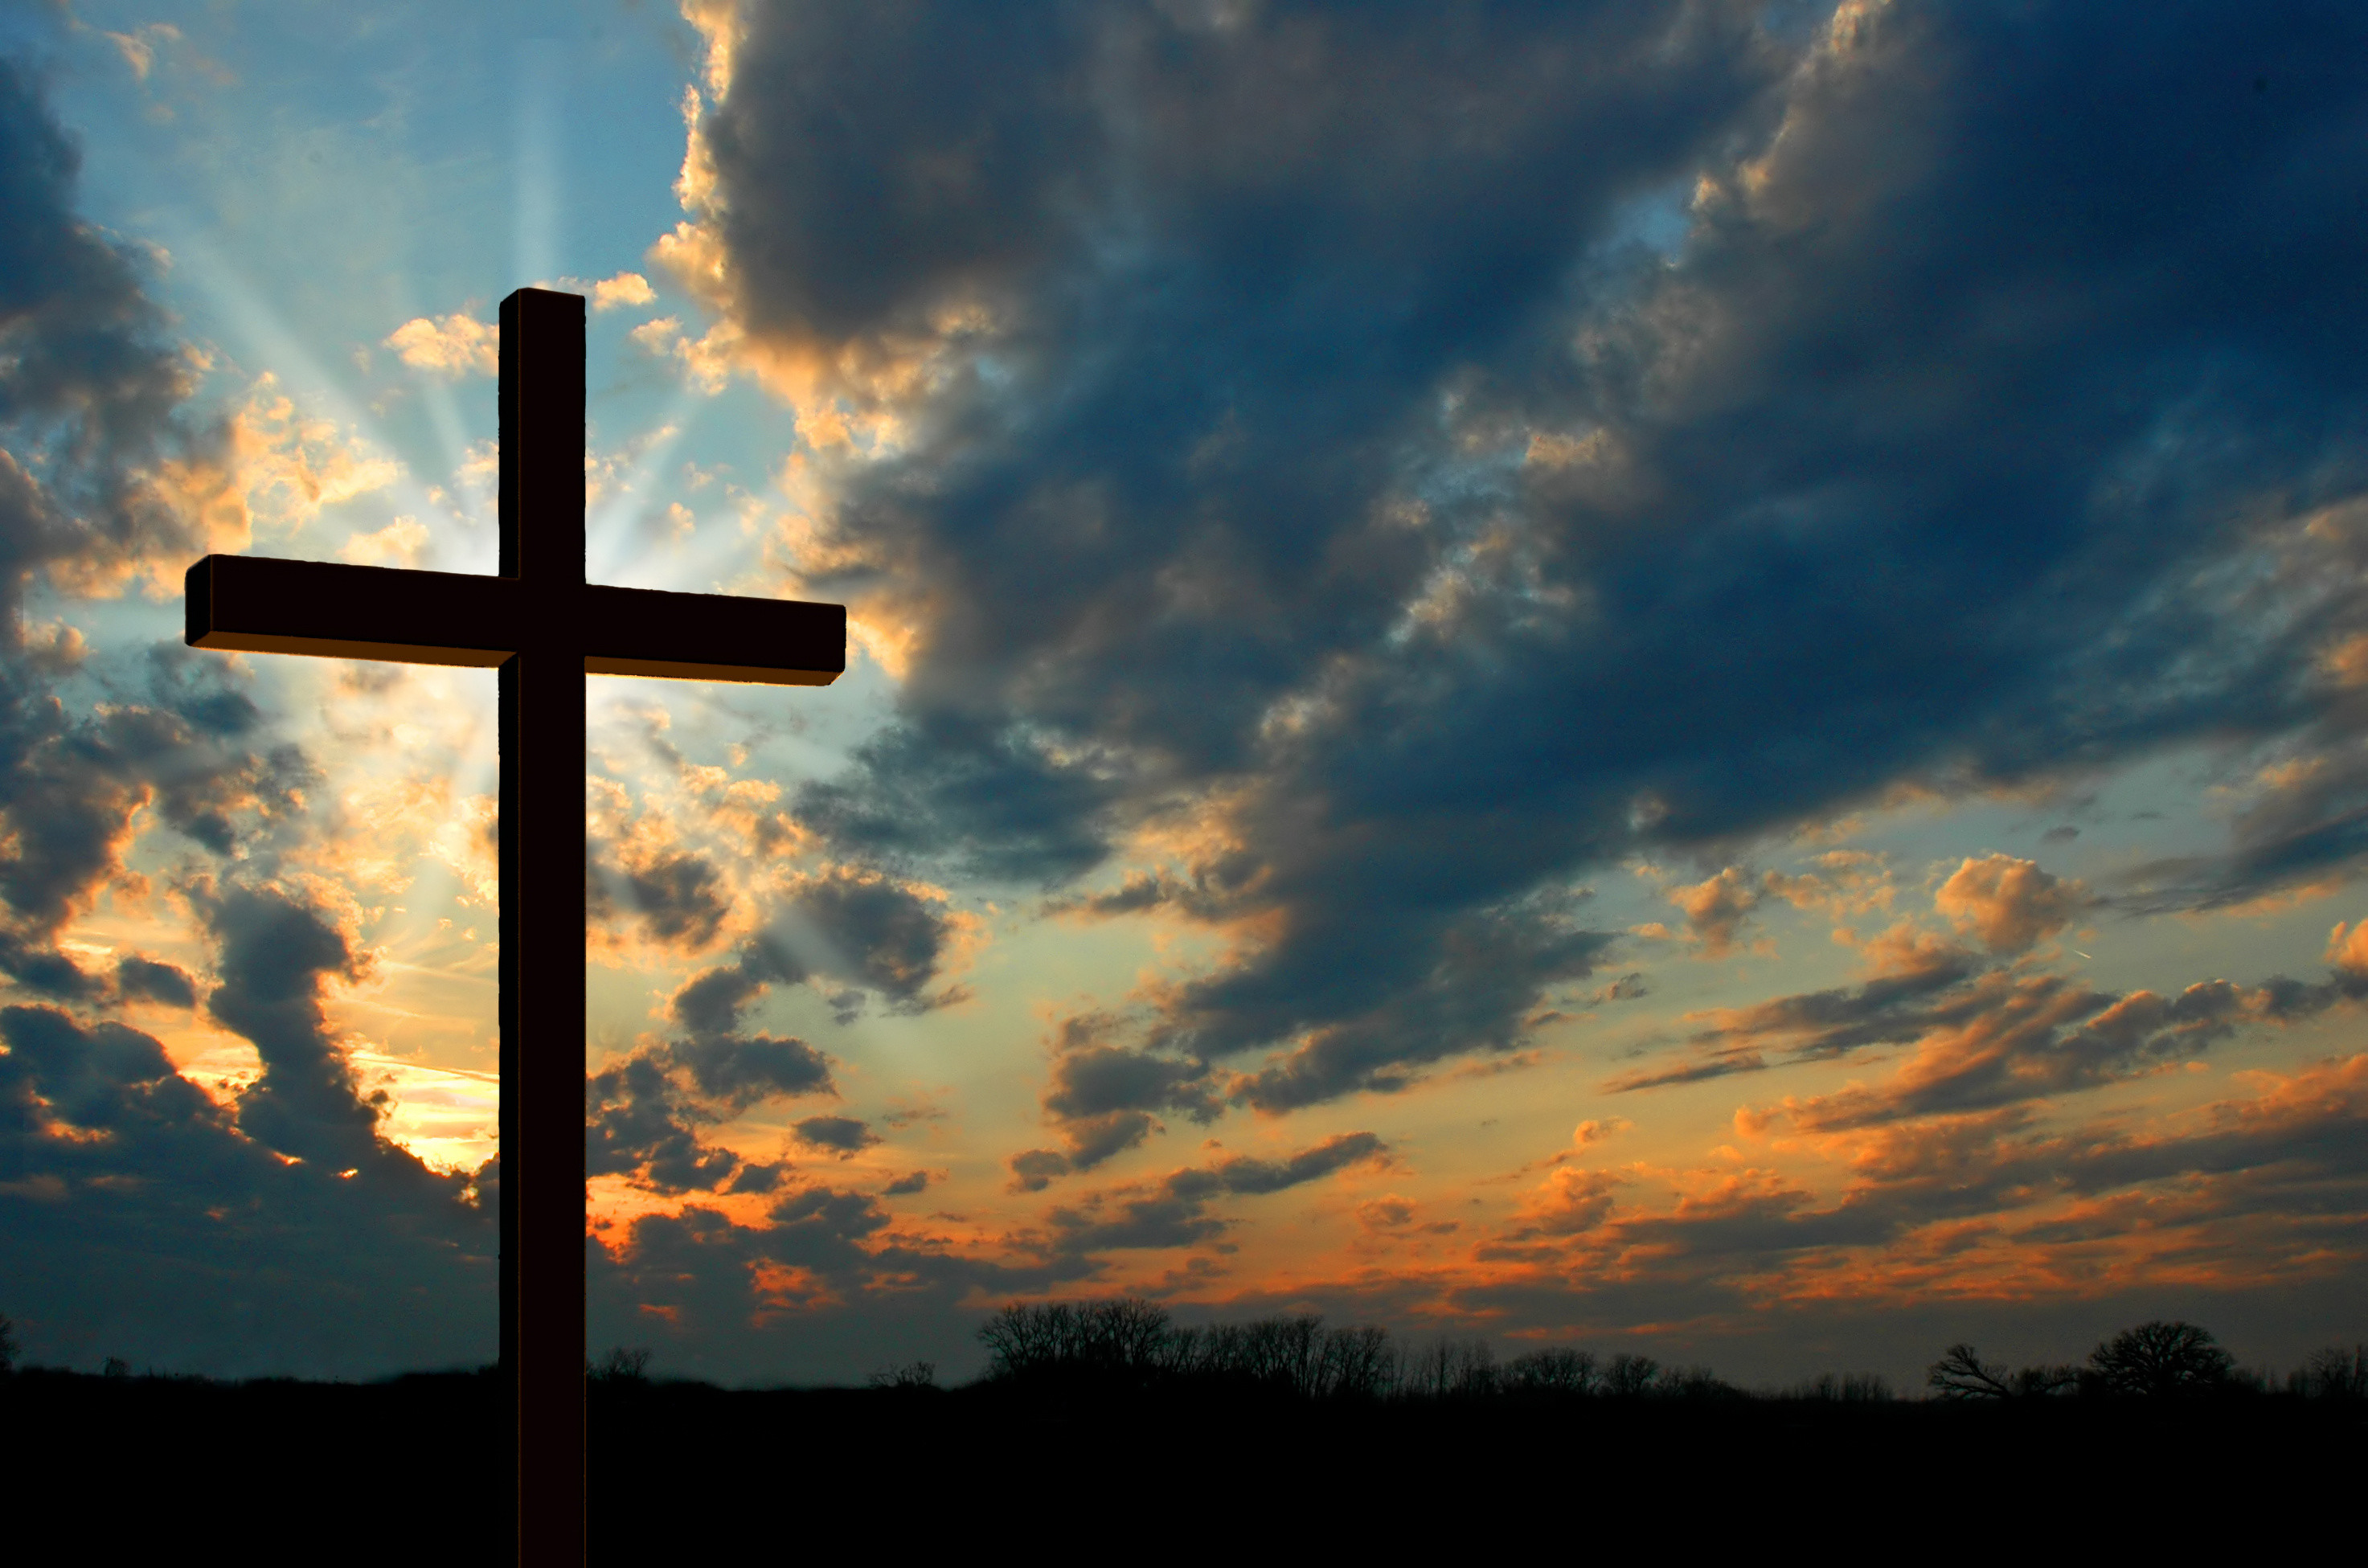 Cross Wallpaper Collection For Free Download   HD Wallpapers   Pinterest   Cross  wallpaper and Wallpaper